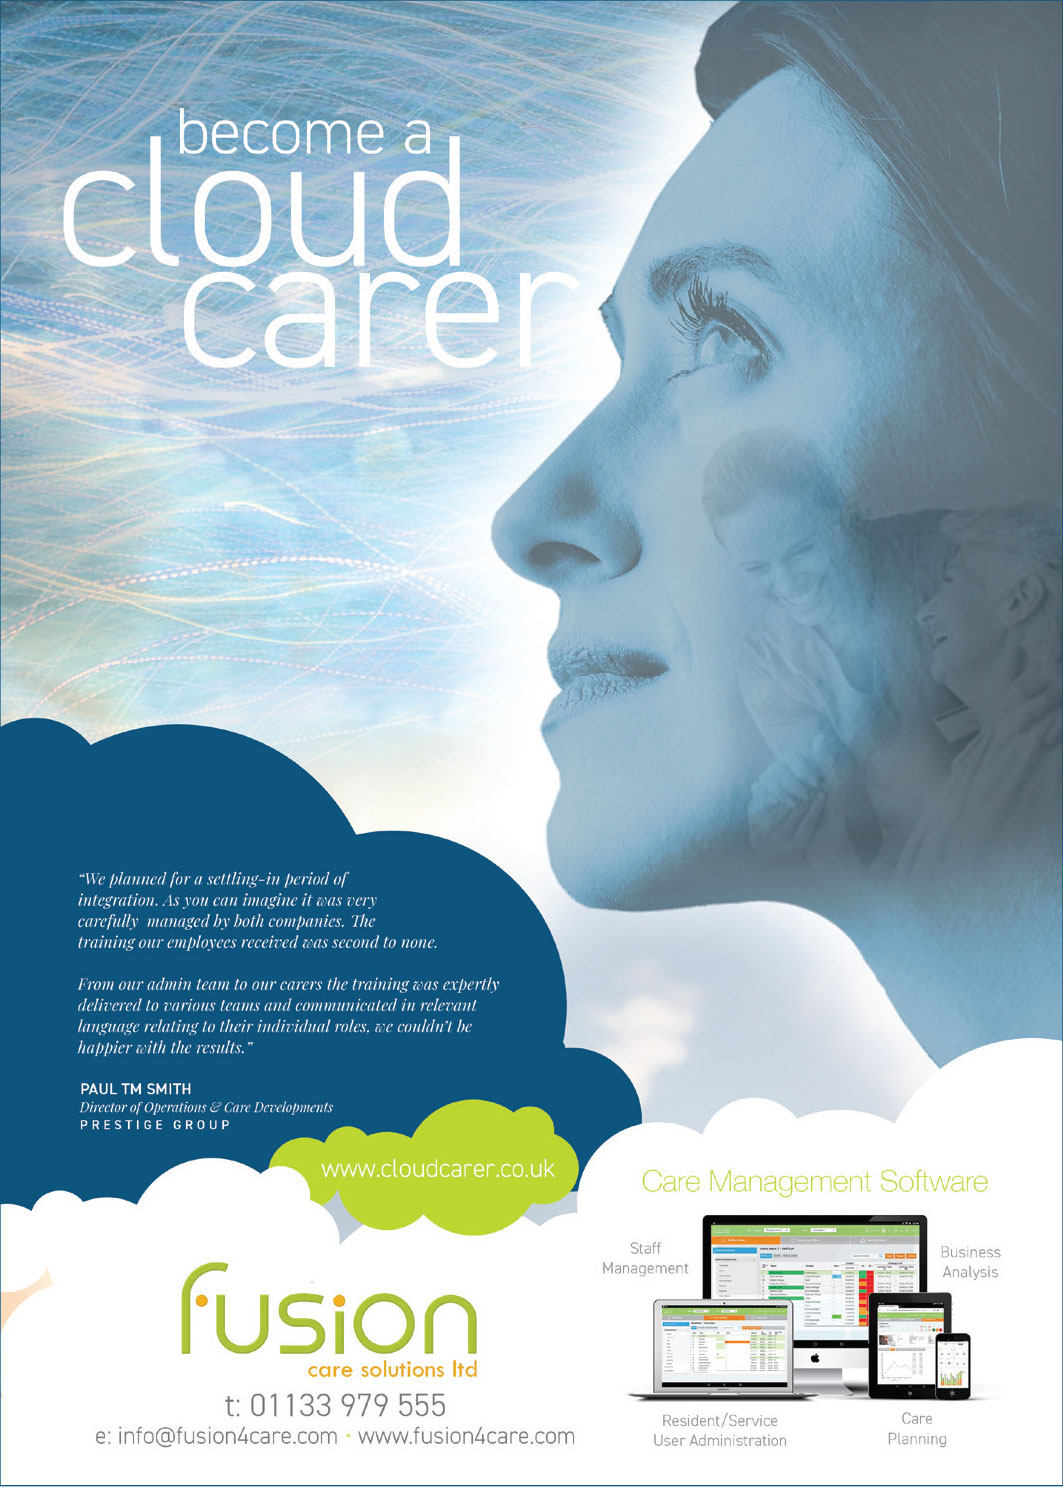 fusion care Cloud Carer